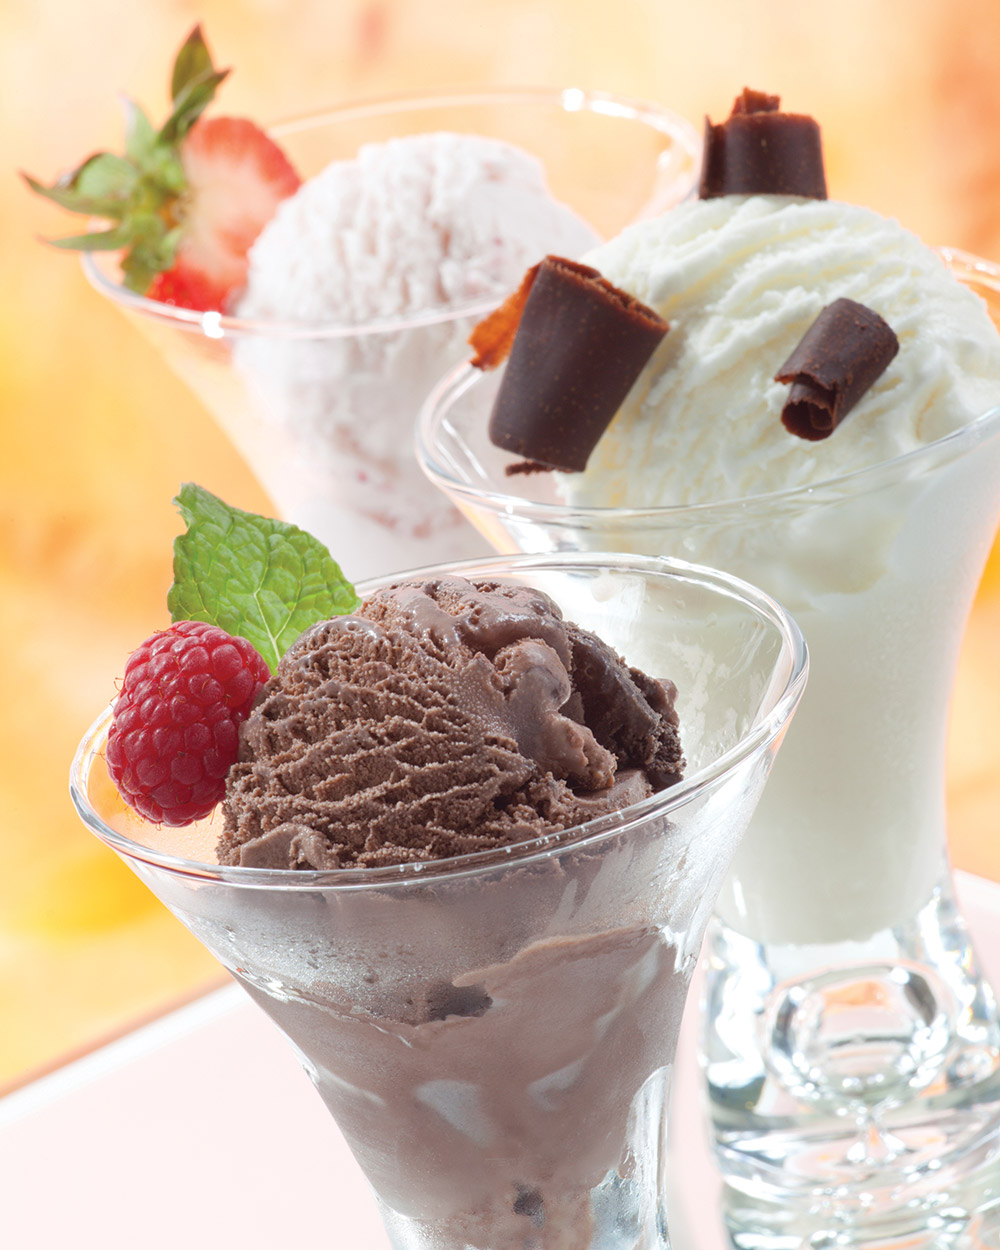 Enjoy the chilly treat while the temperatures rise!